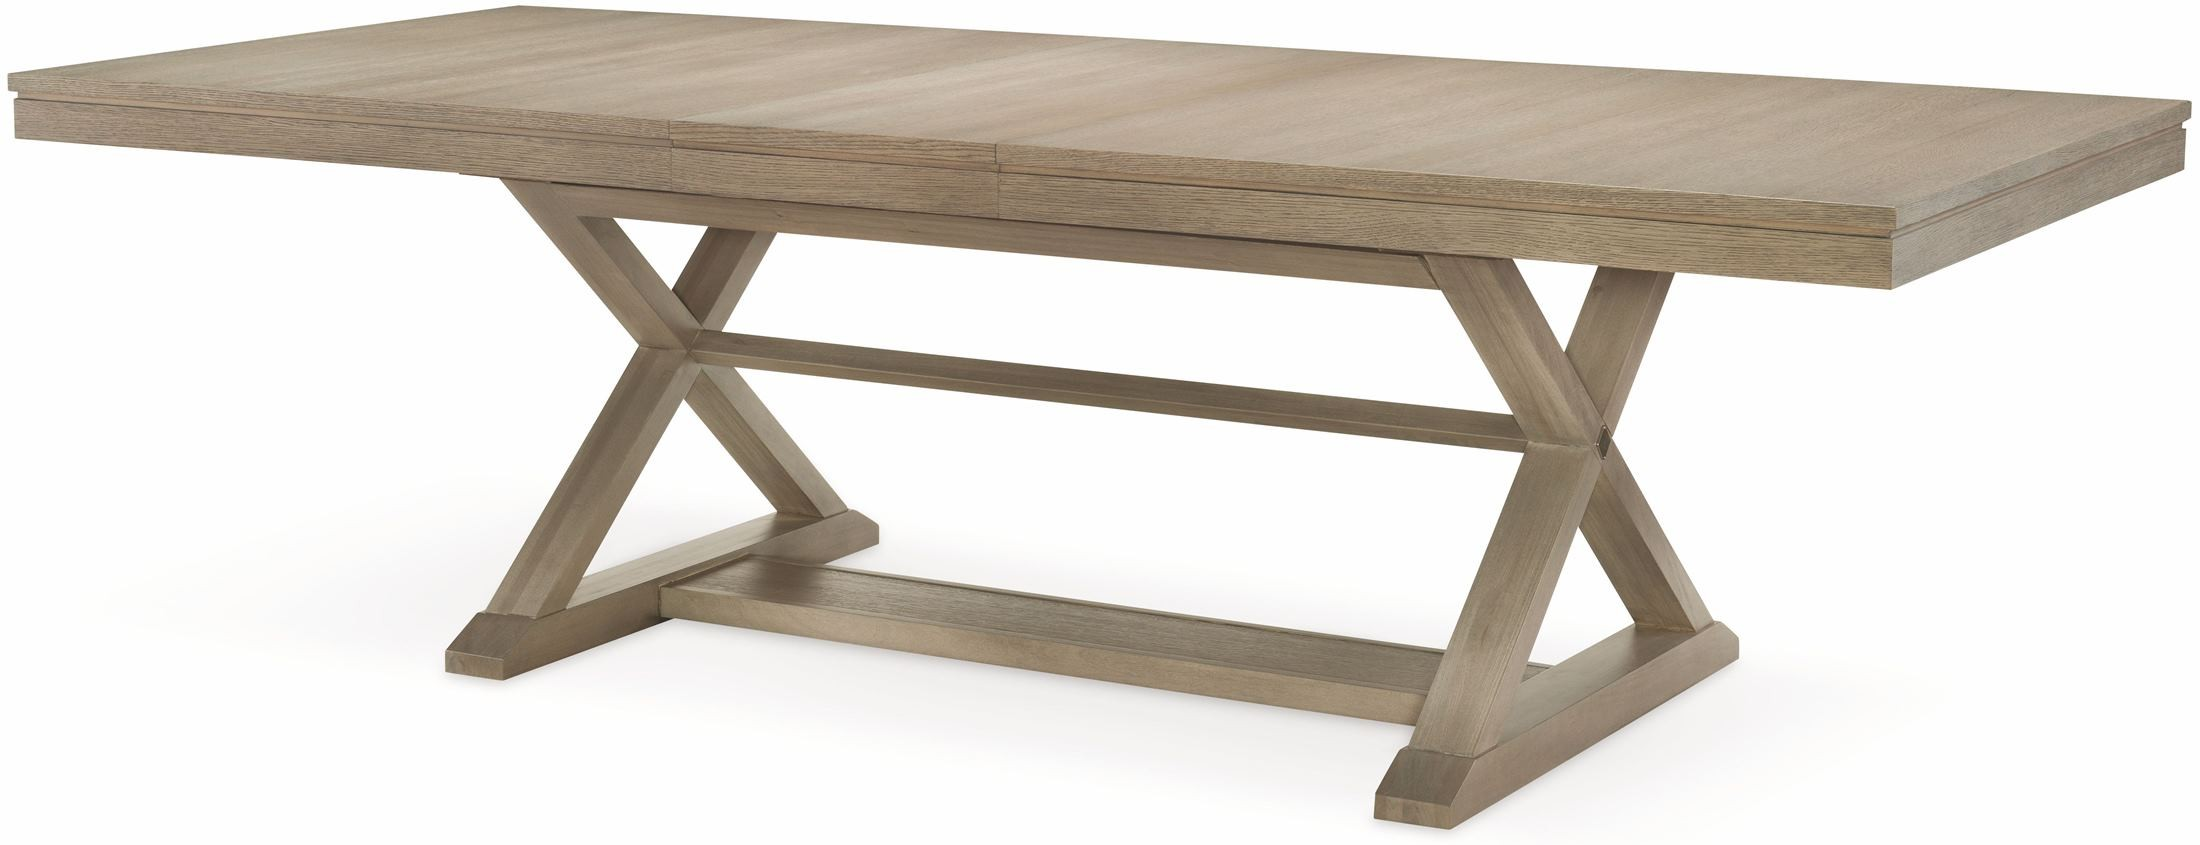 High Line Greige Extendable Trestle Dining Table 6000  : 6000 621kleafs from colemanfurniture.com size 2200 x 845 jpeg 160kB